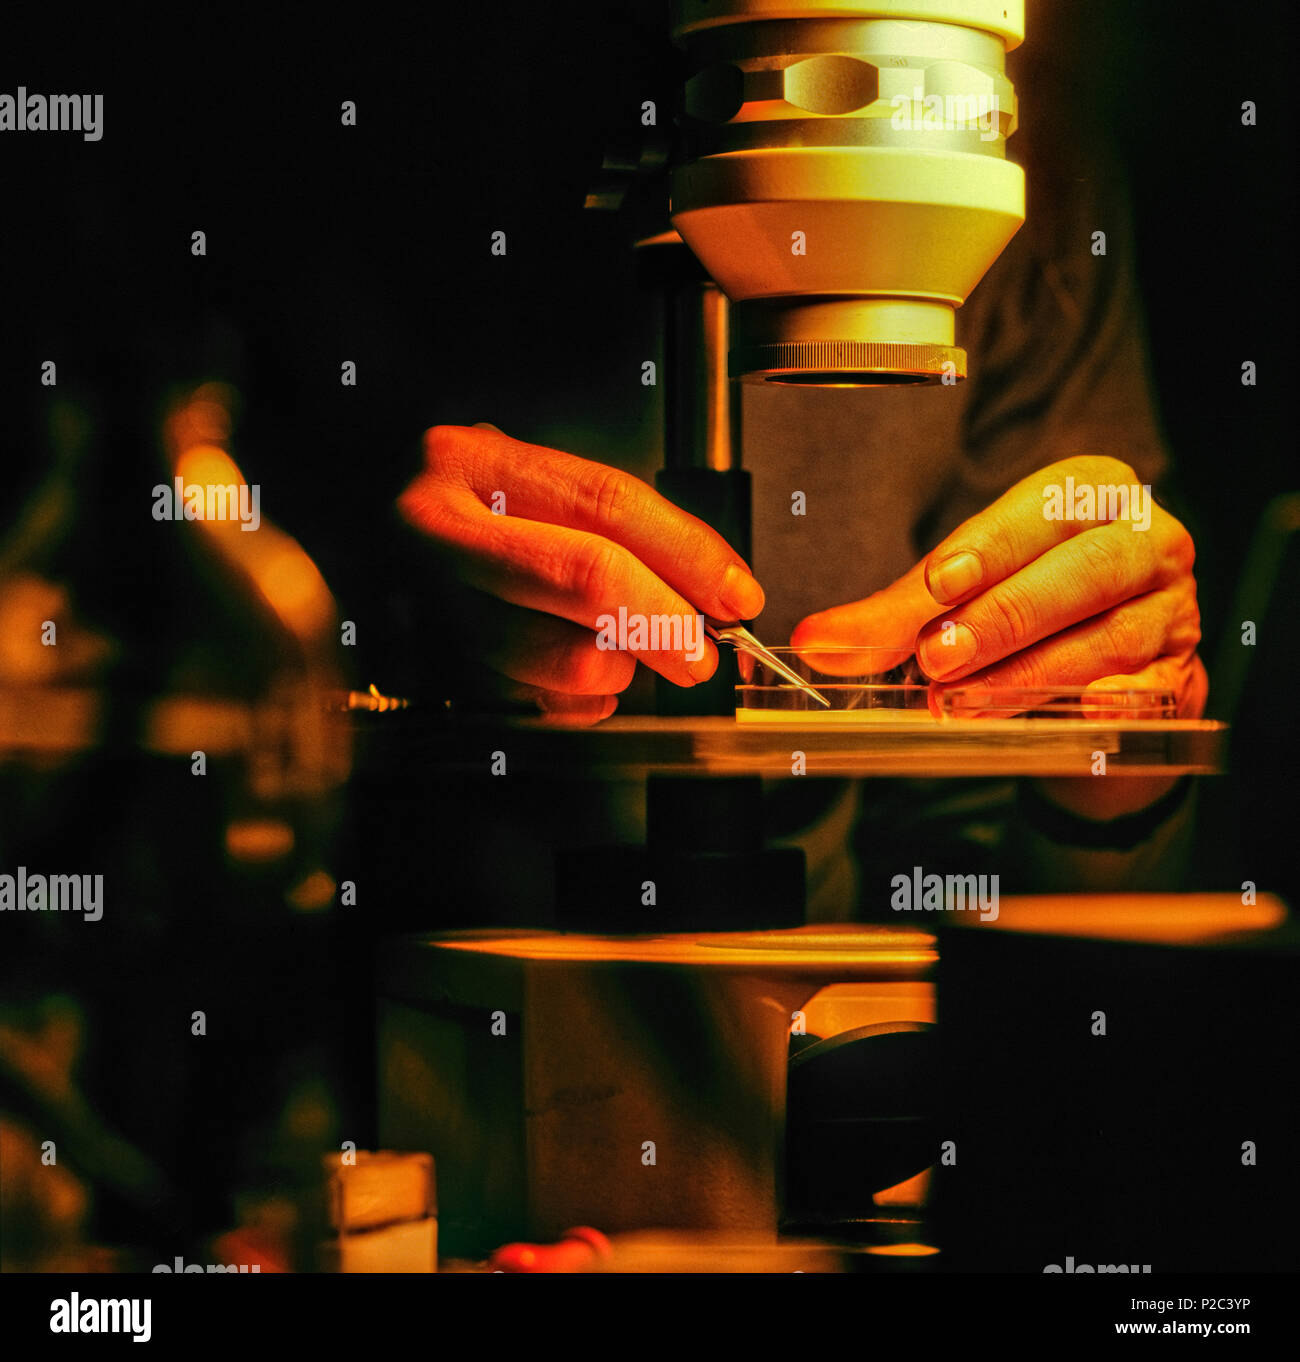 A scientist uses a low-power microscope to examine anatomy of a ...